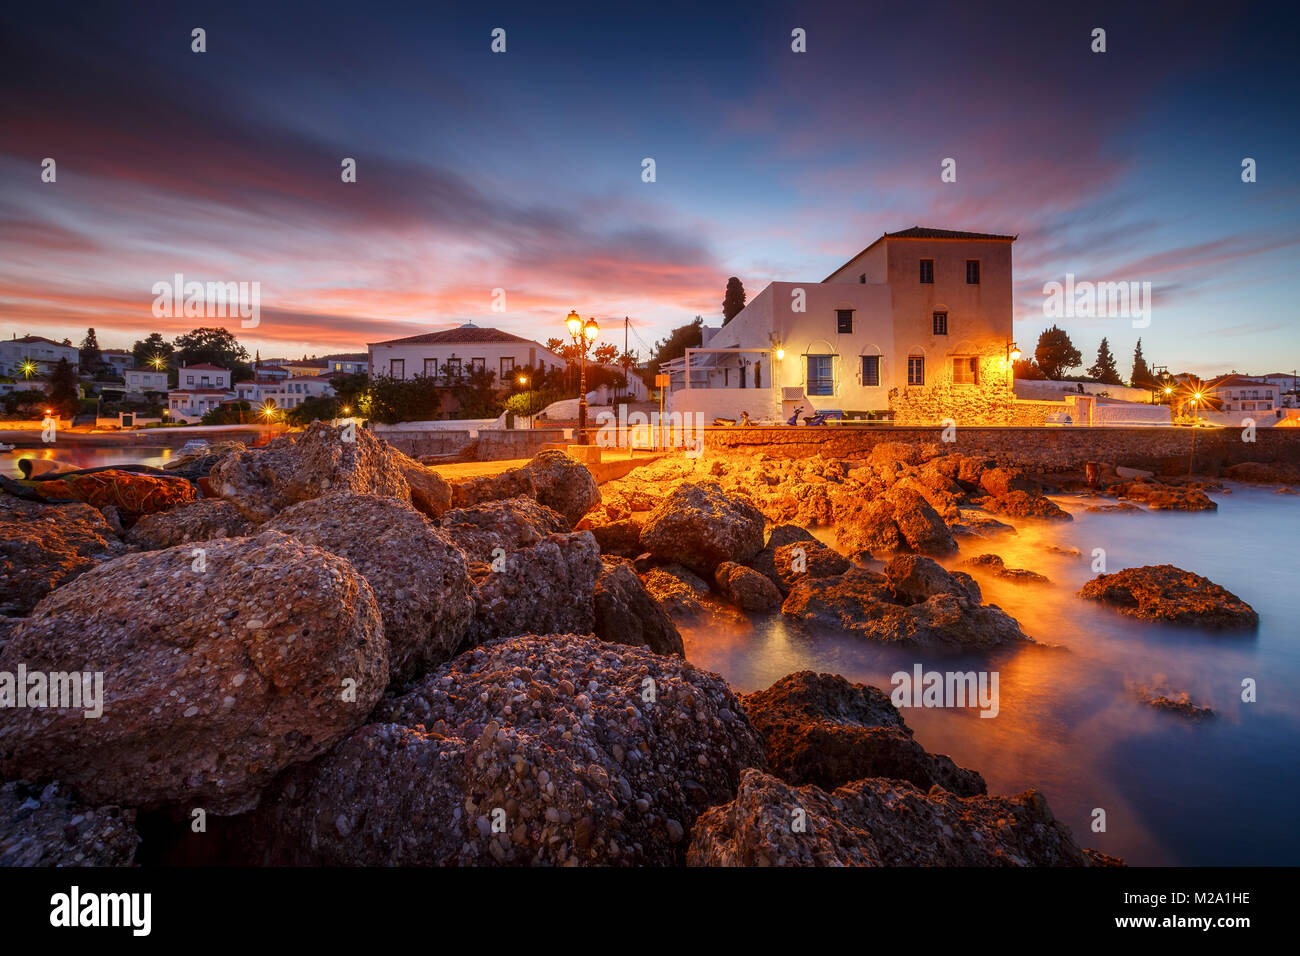 View of the harbour in Spetses, Greece. - Stock Image